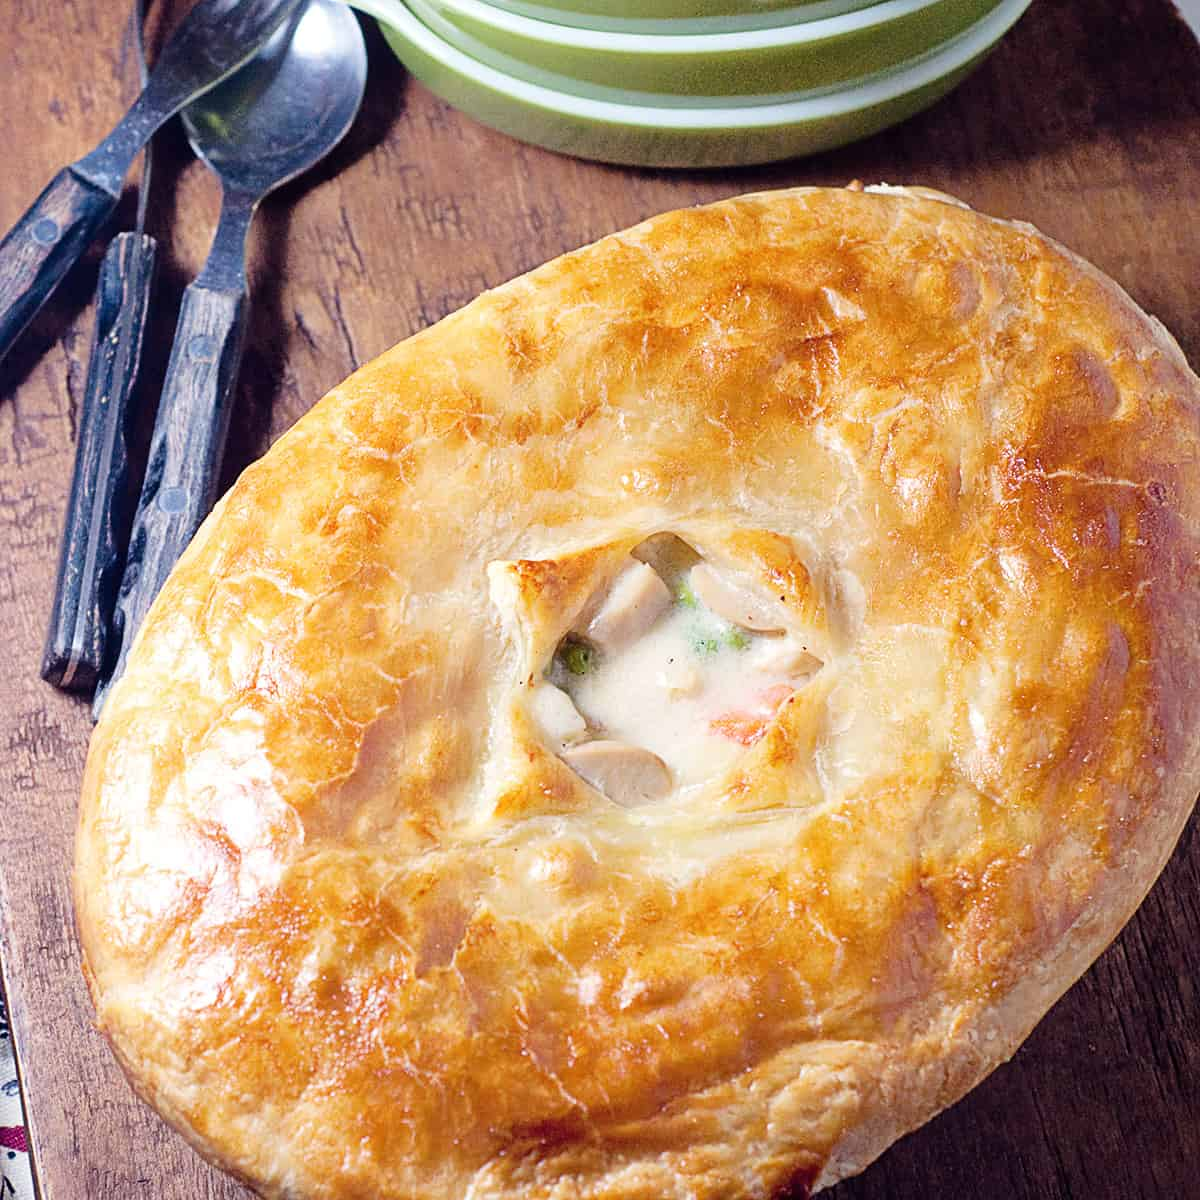 Classic chicken pot pie in a serving dish on a wooden board.